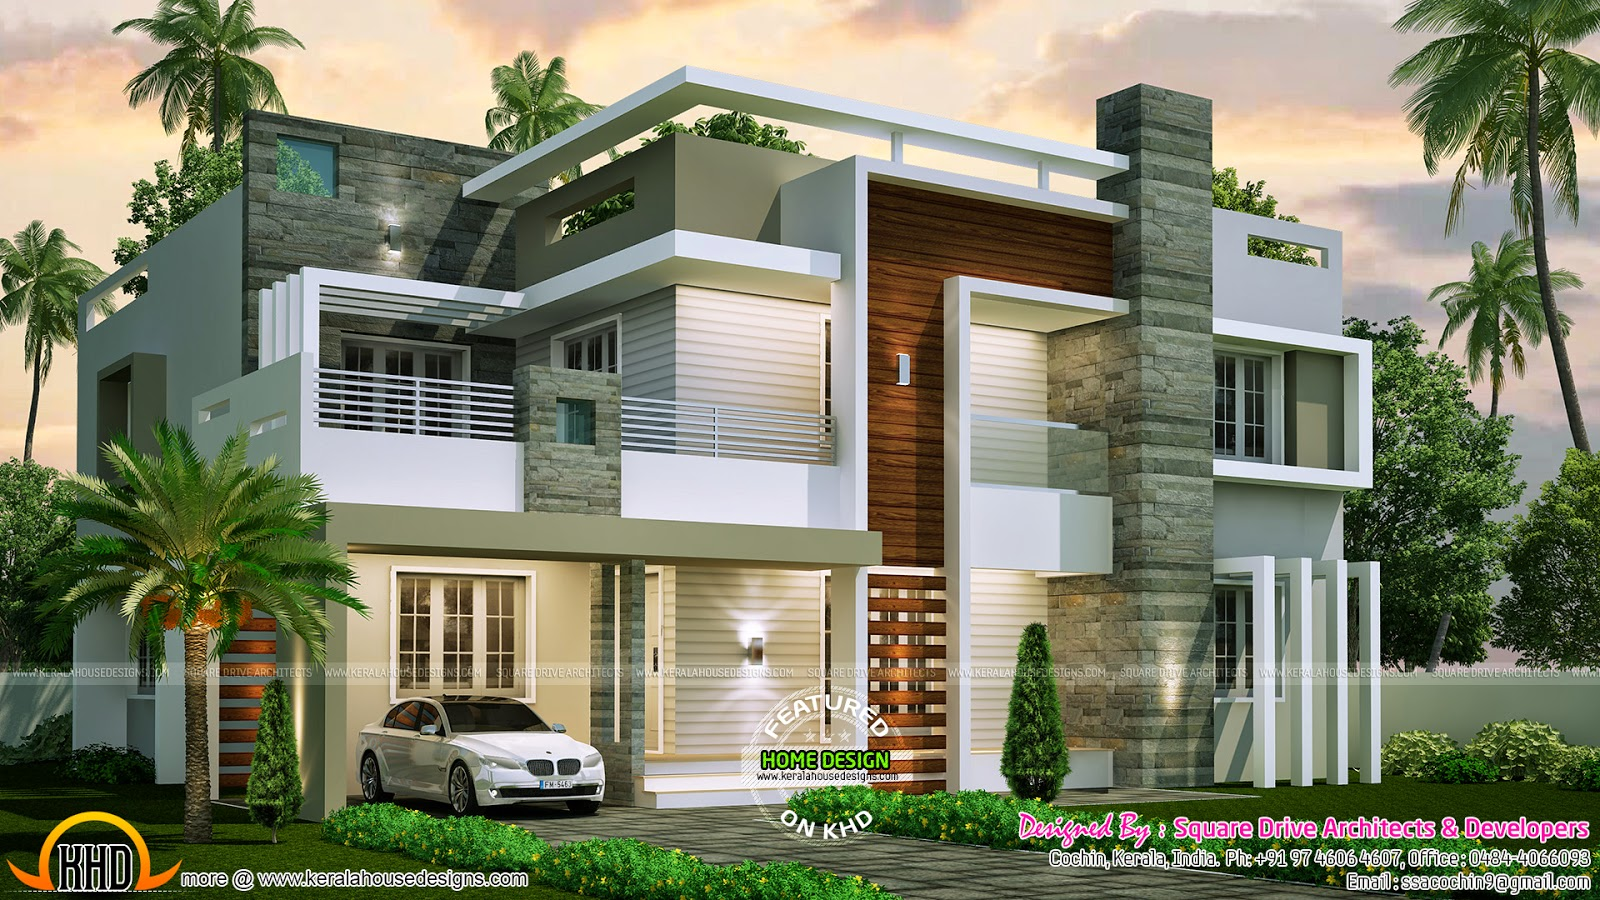 4 bedroom contemporary home design kerala home design for Kerala modern house designs